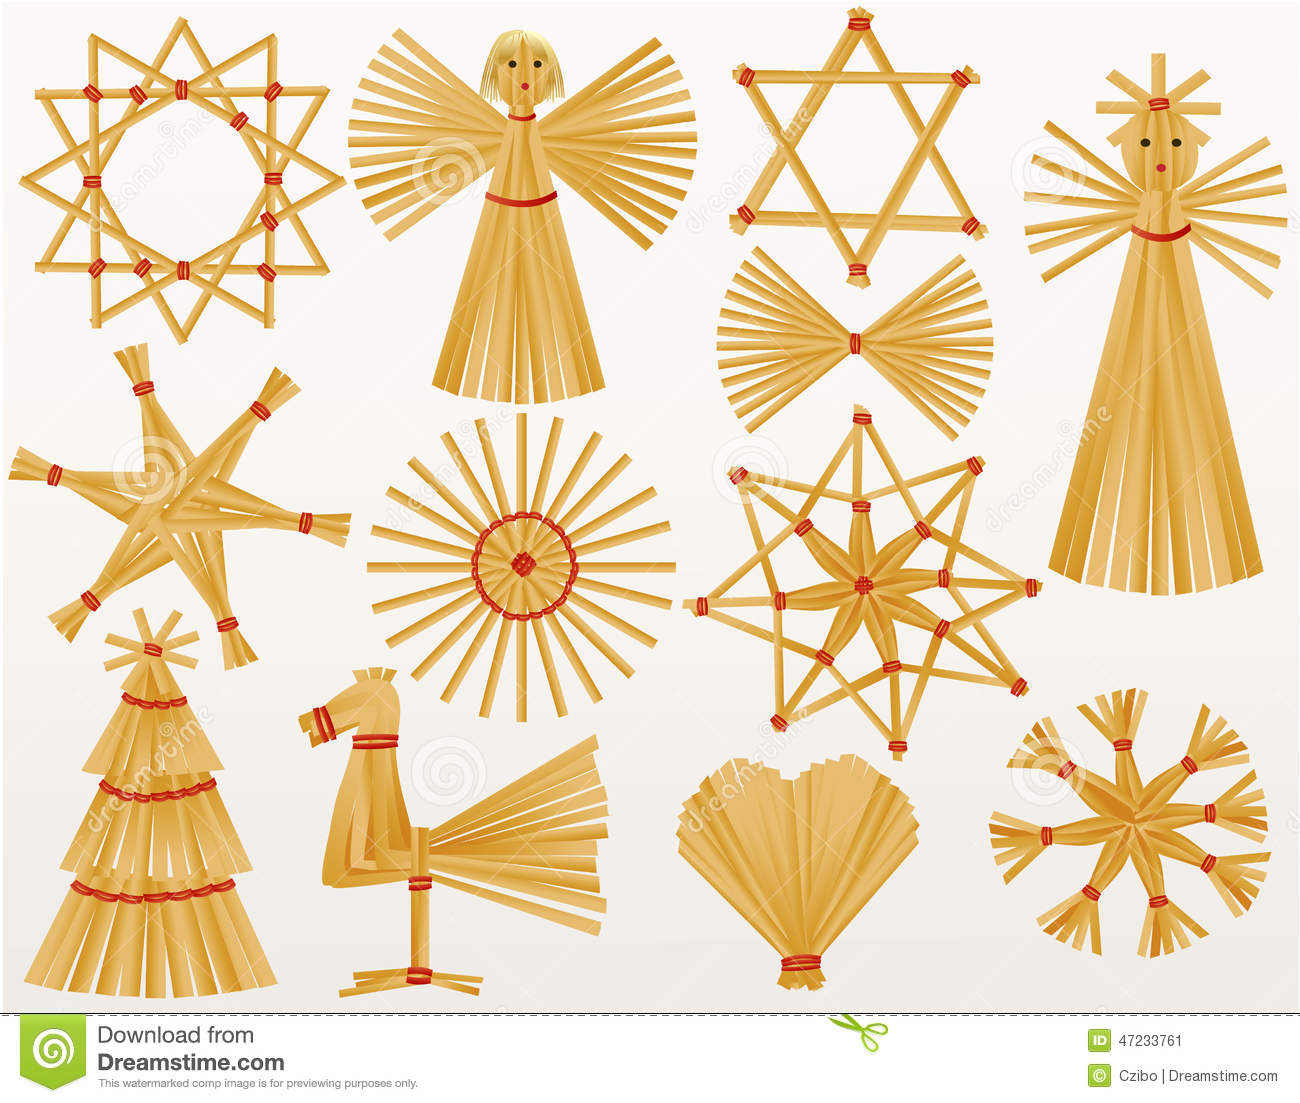 Christmas Straw Decorations Stock Vector